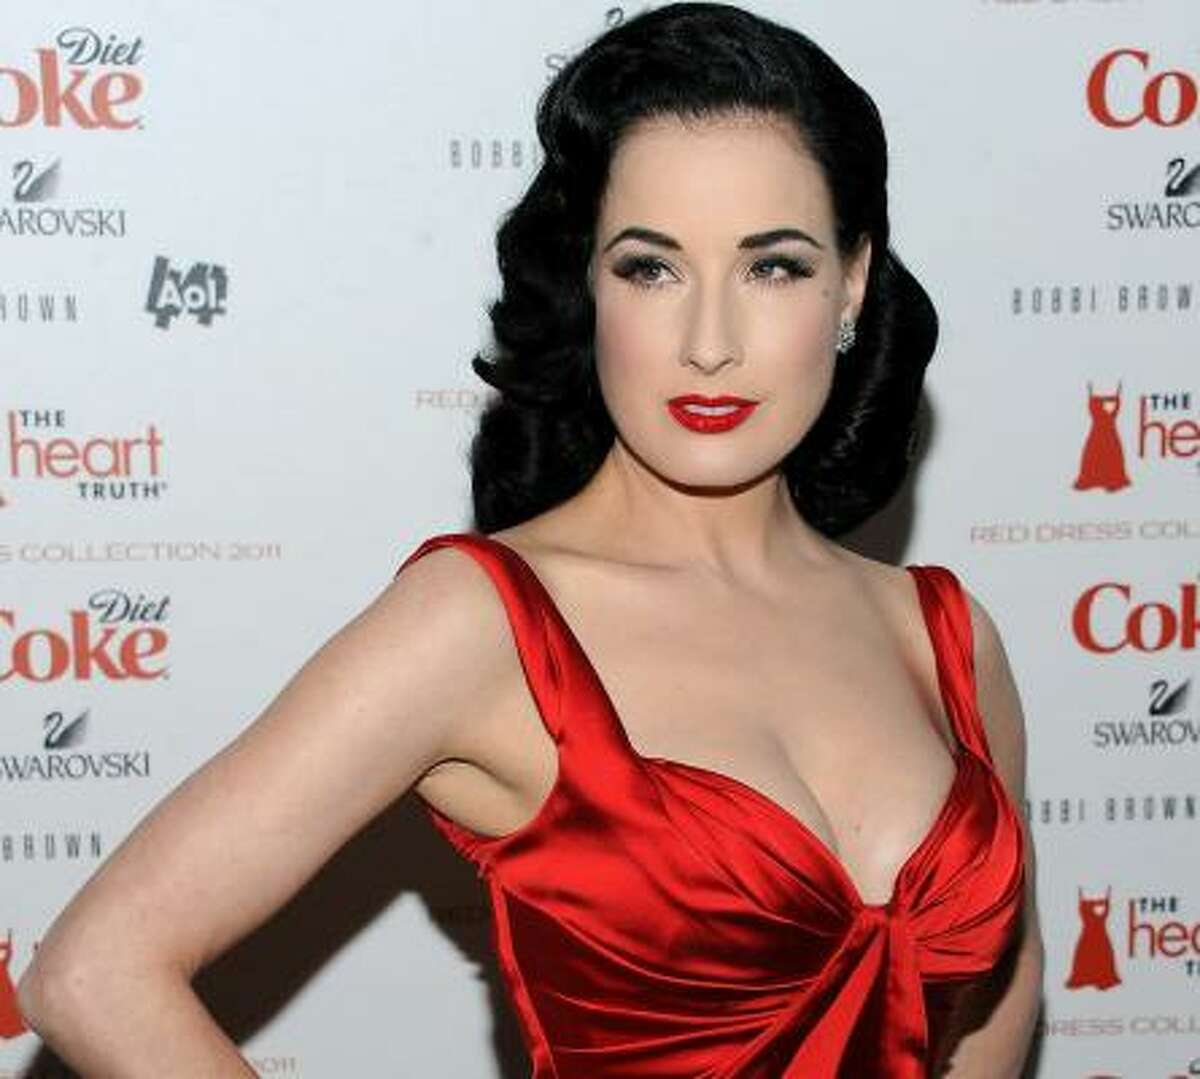 This satiny number by Zac Posen fits Dita Von Teese's classic pinup look. Her lips are the perfect red, as always.